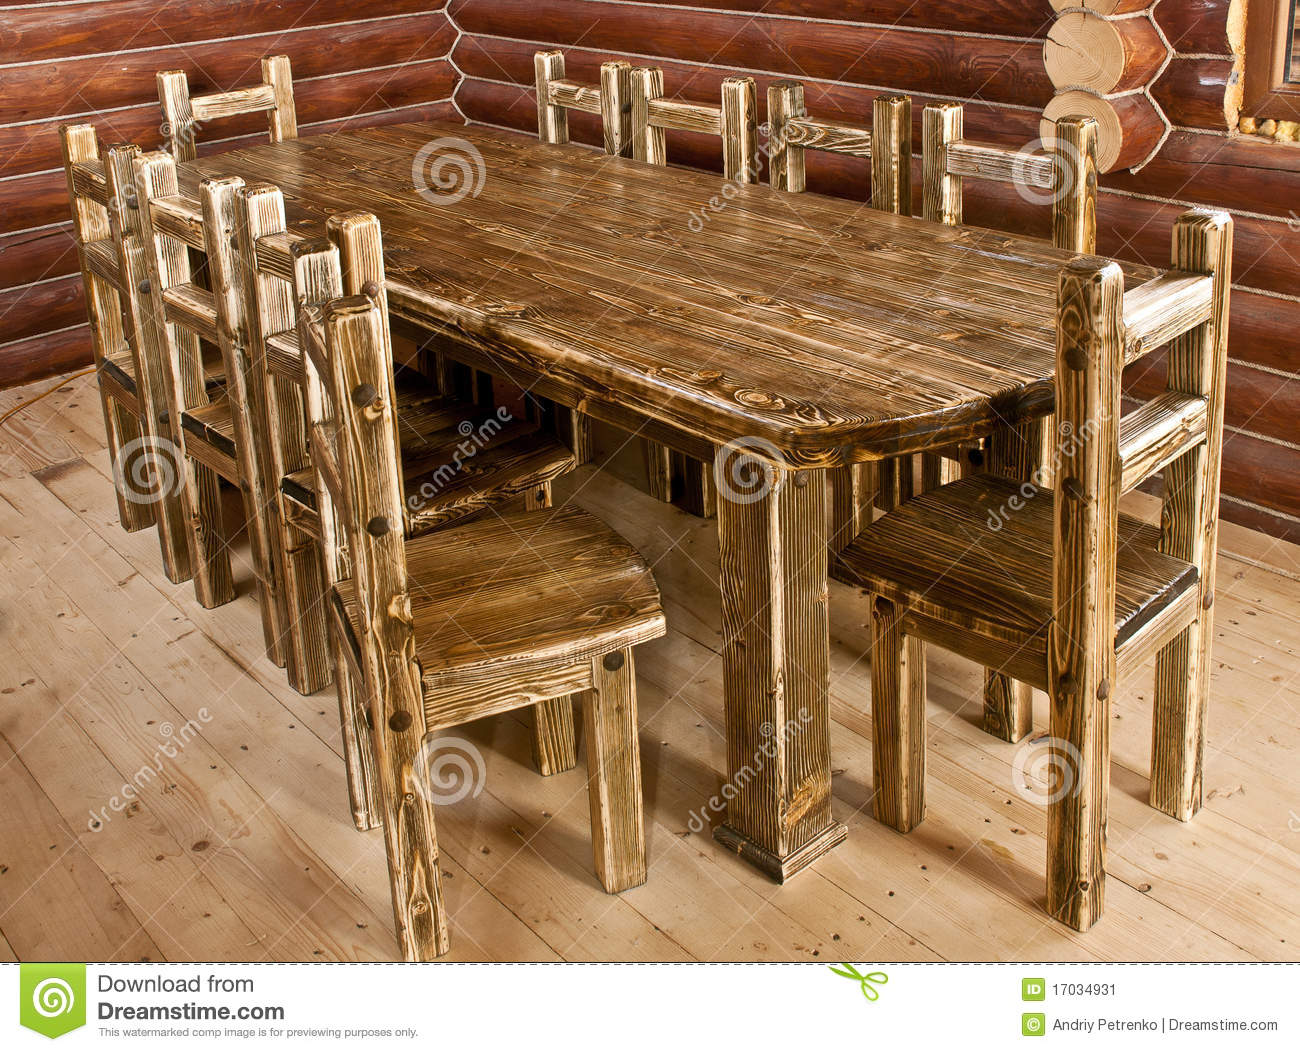 Grande table de cuisine fabriqu e la main image stock image 17034931 for Grande table de cuisine